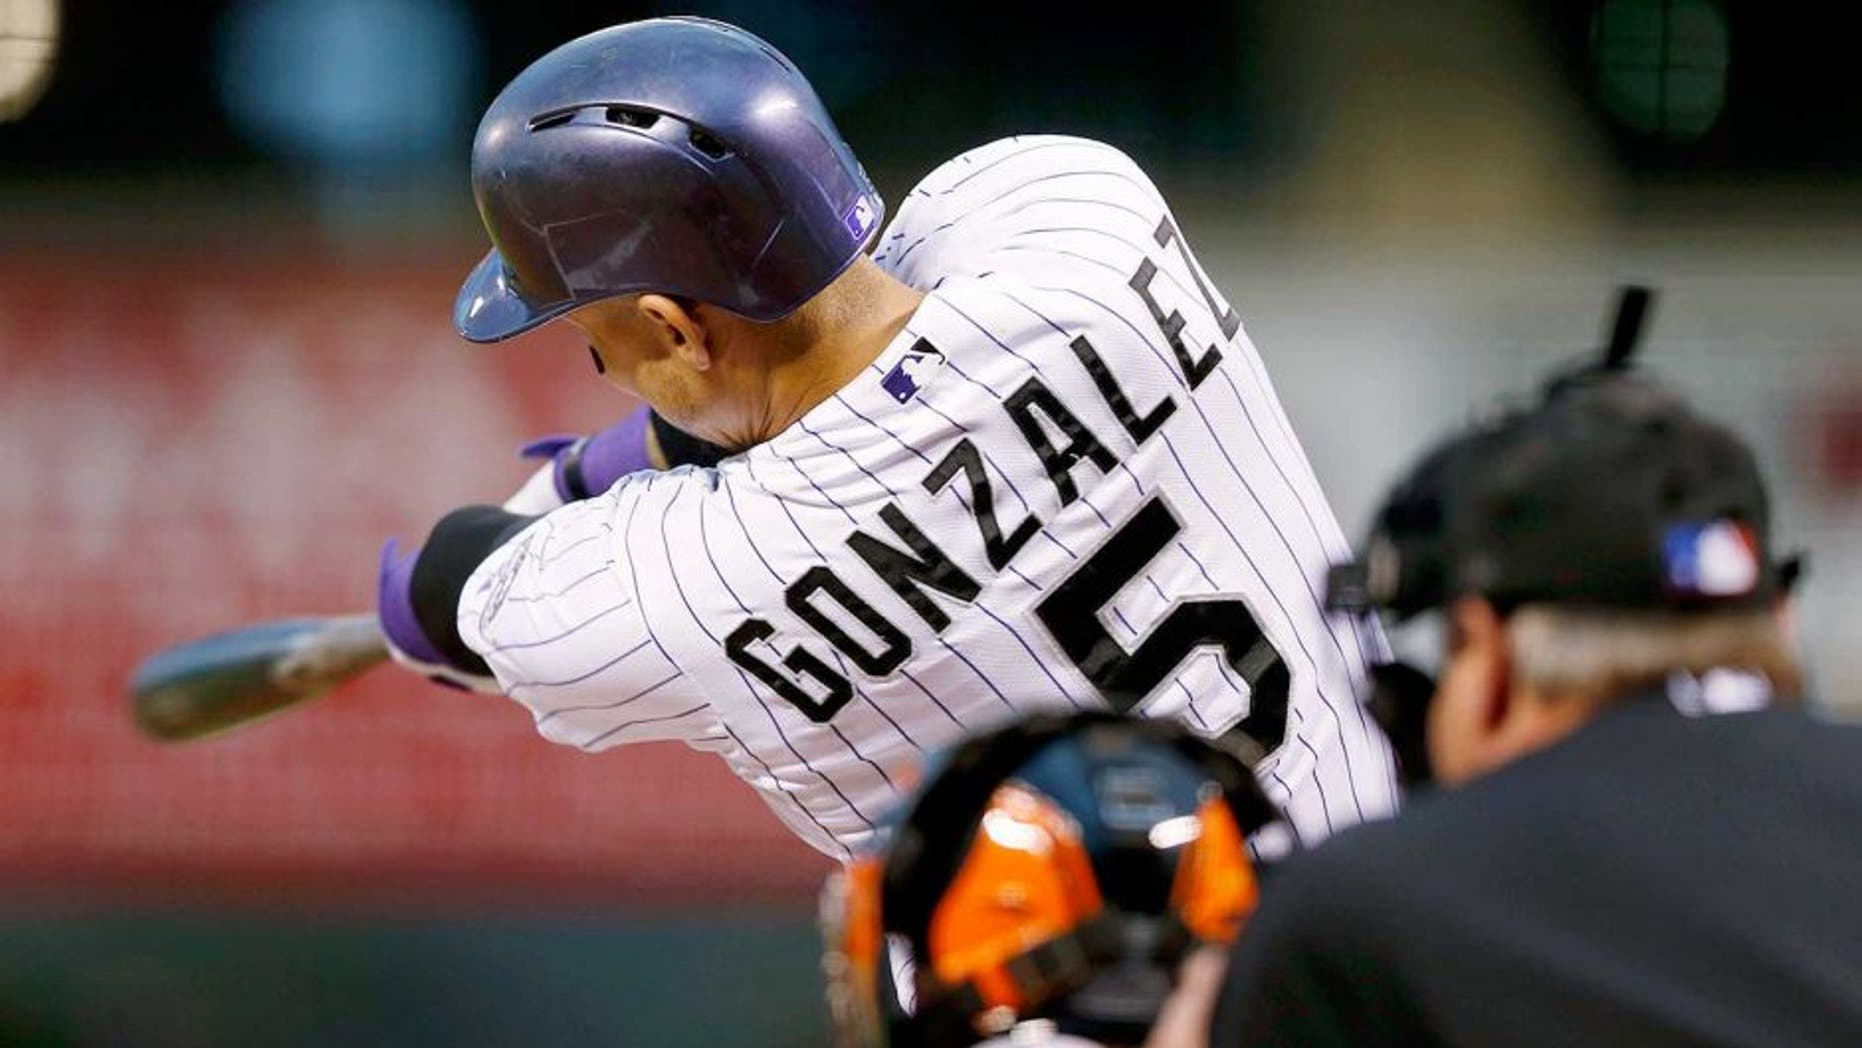 Colorado Rockies' Carlos Gonzalez connects for a solo home run off San Francisco Giants starting pitcher Chris Heston in the first inning of a baseball game Friday, Sept. 4, 2015, in Denver. (AP Photo/David Zalubowski)